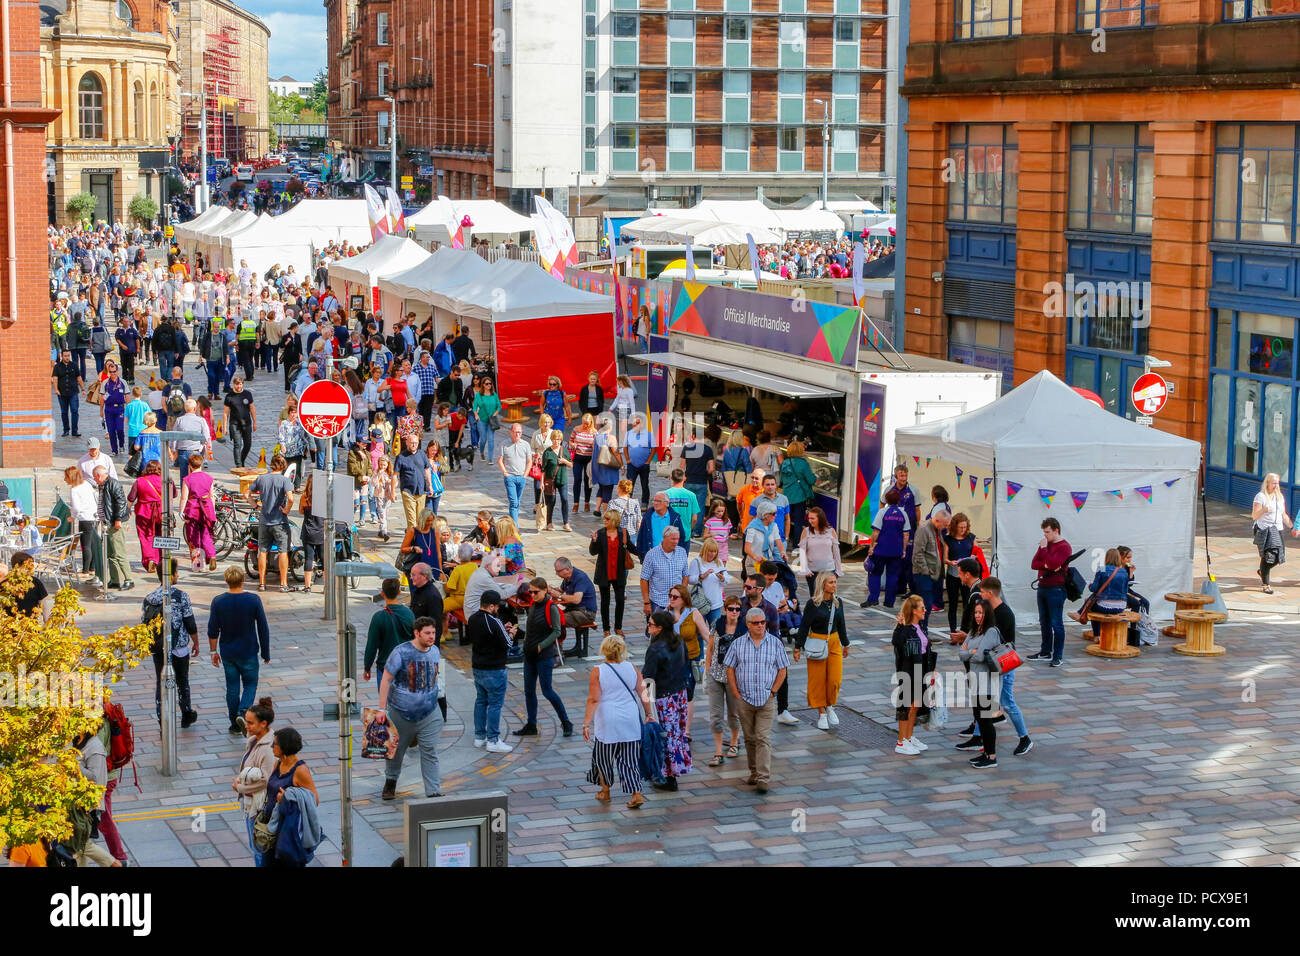 Glasgow, UK, 4 Aug 2018. On the first day of the Merchant city festival, thousands took advantage of the warm summer evening to enjoy the street artists, musicians, dancers and food stalls. The festival, an annual event, is running at the same time as the European Games and is due to finish on 12 Augusttourists - Stock Image